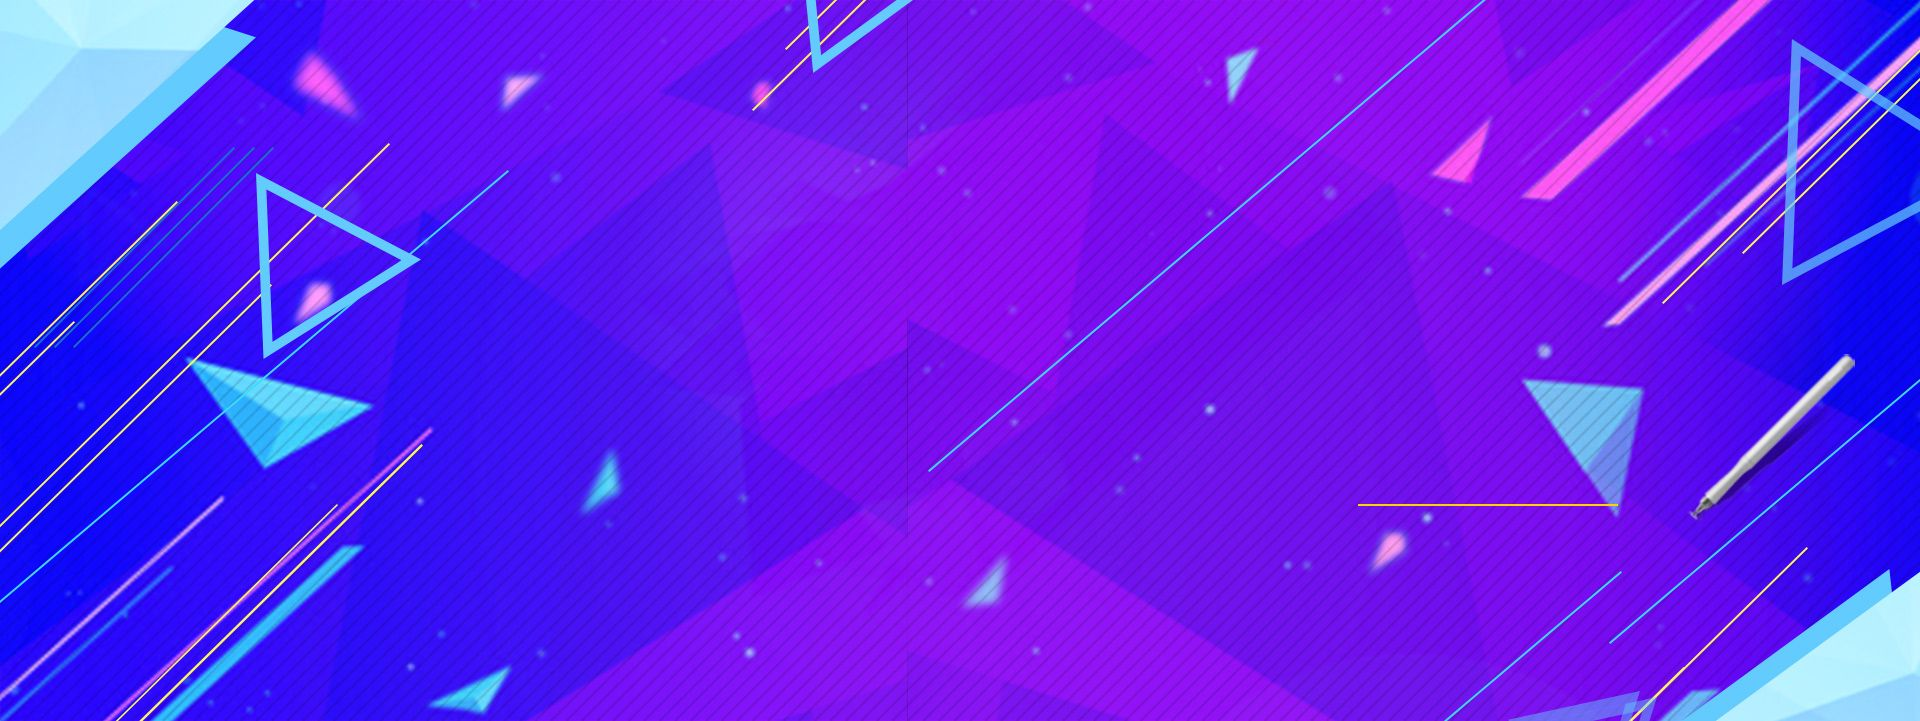 Poster Simples Abstrac A Geometria Roxo Background Fundo